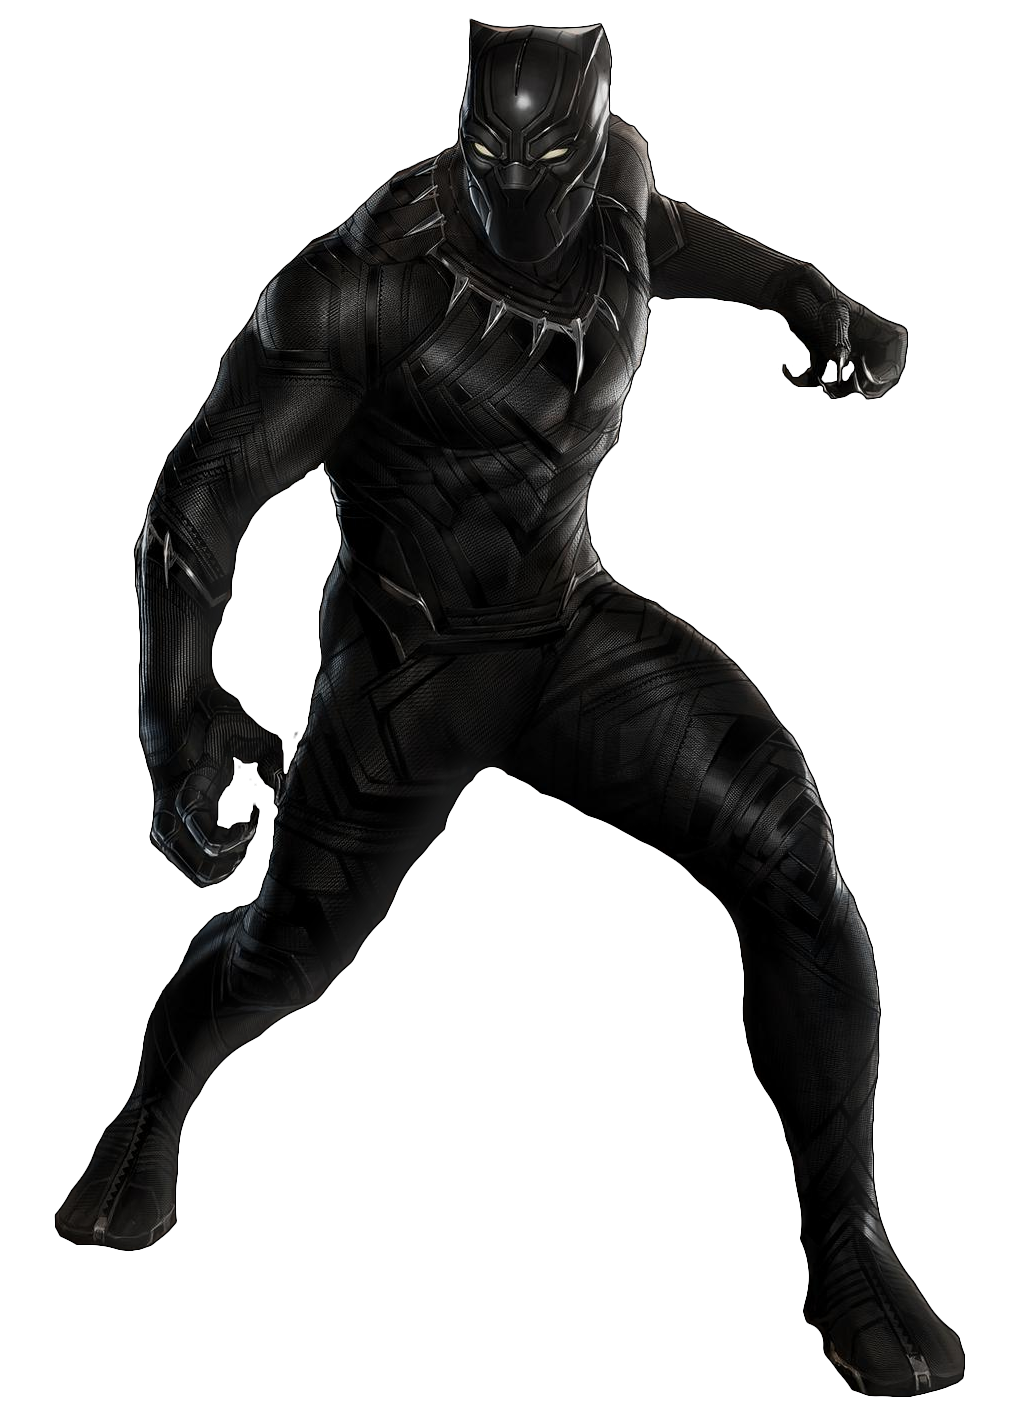 Panther png. Image black marvel movies